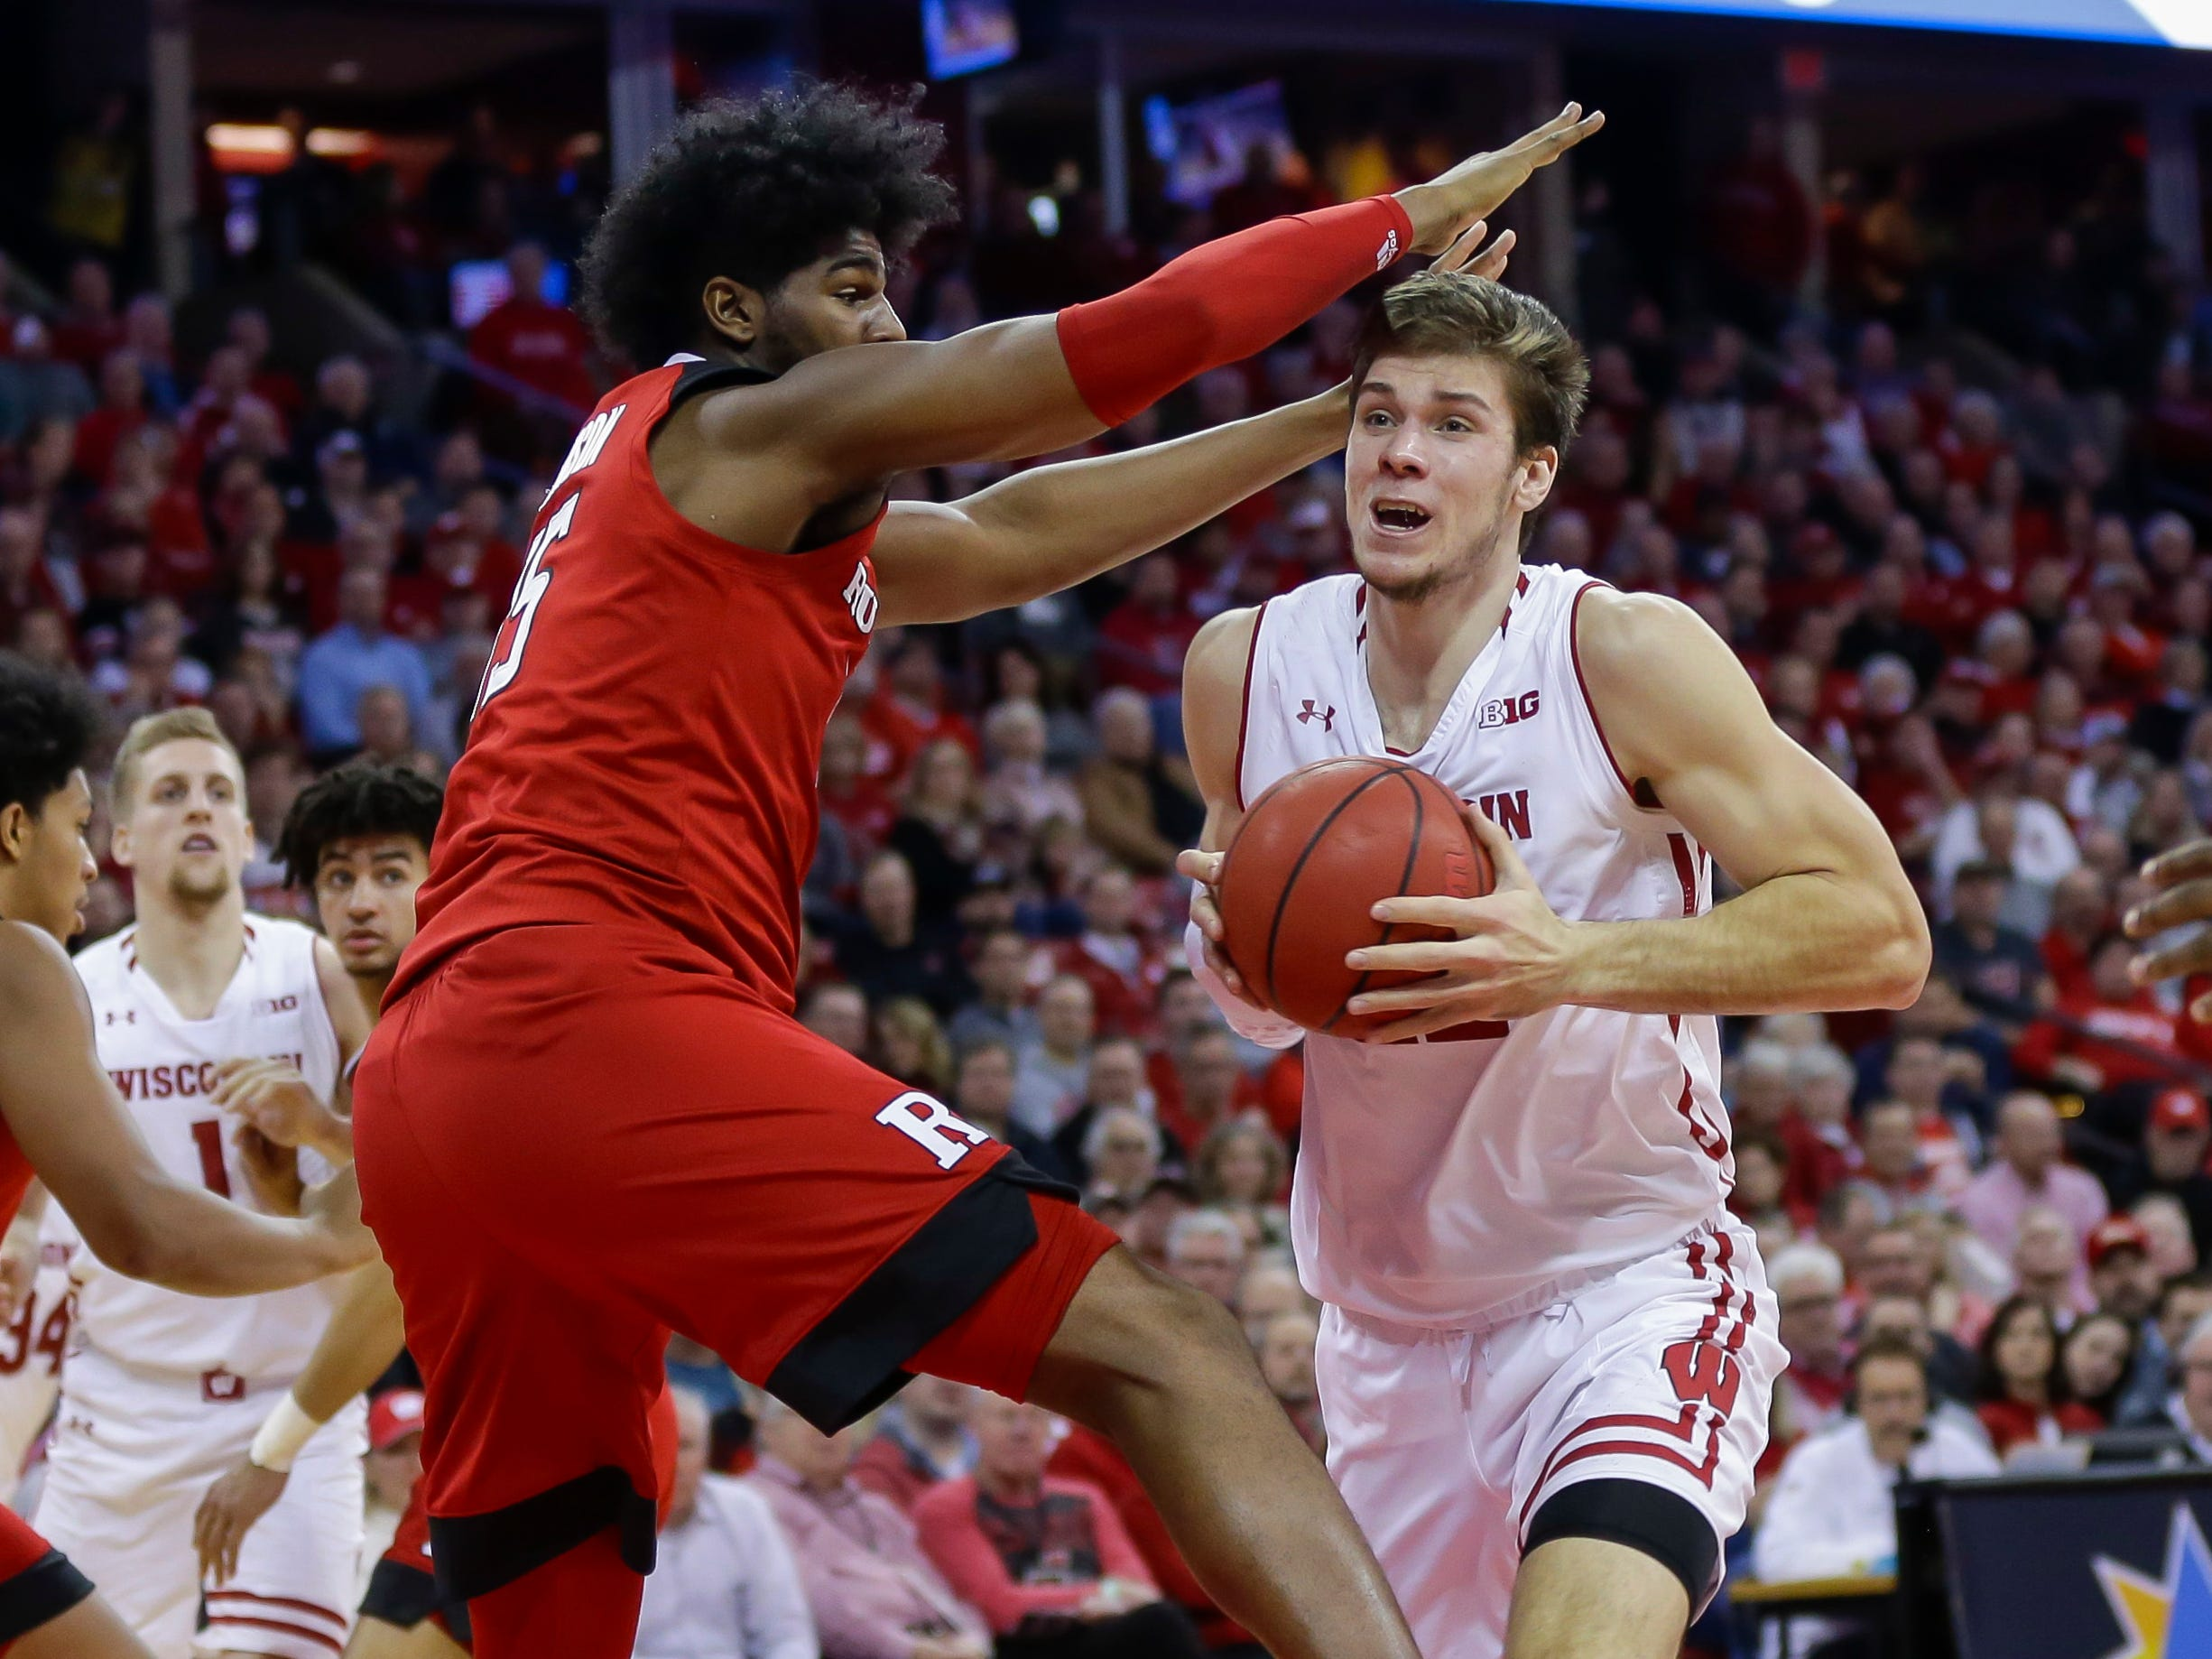 Wisconsin forward Ethan Happ gets past Myles Johnson of Rutgers on a drive after getting him up in air during the second half on Monday.